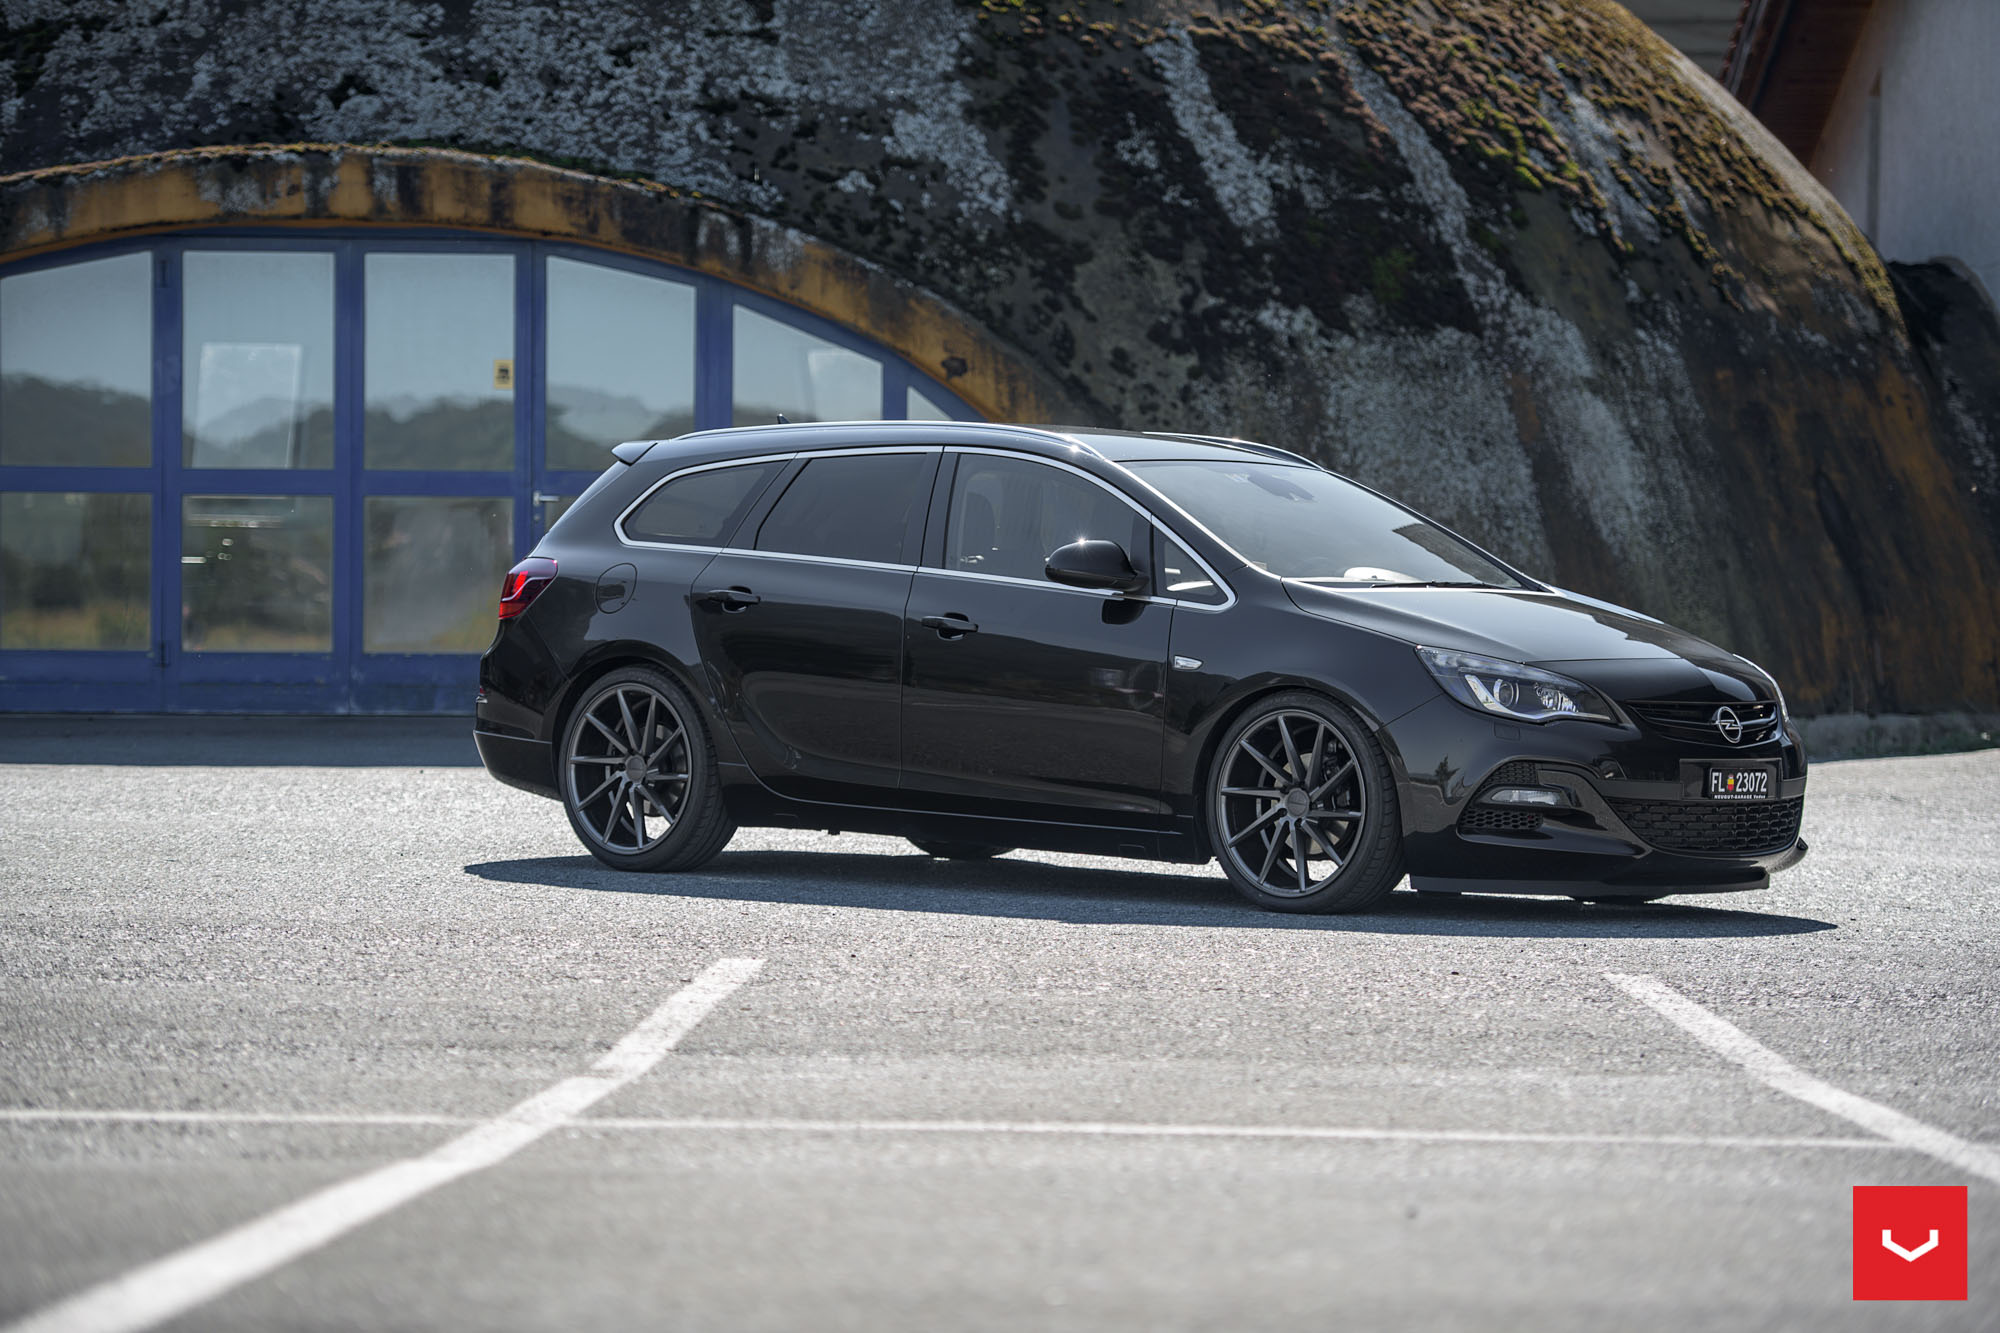 Opel Astra J Wagon Doubles Its Value With Vossen Cvt Wheels